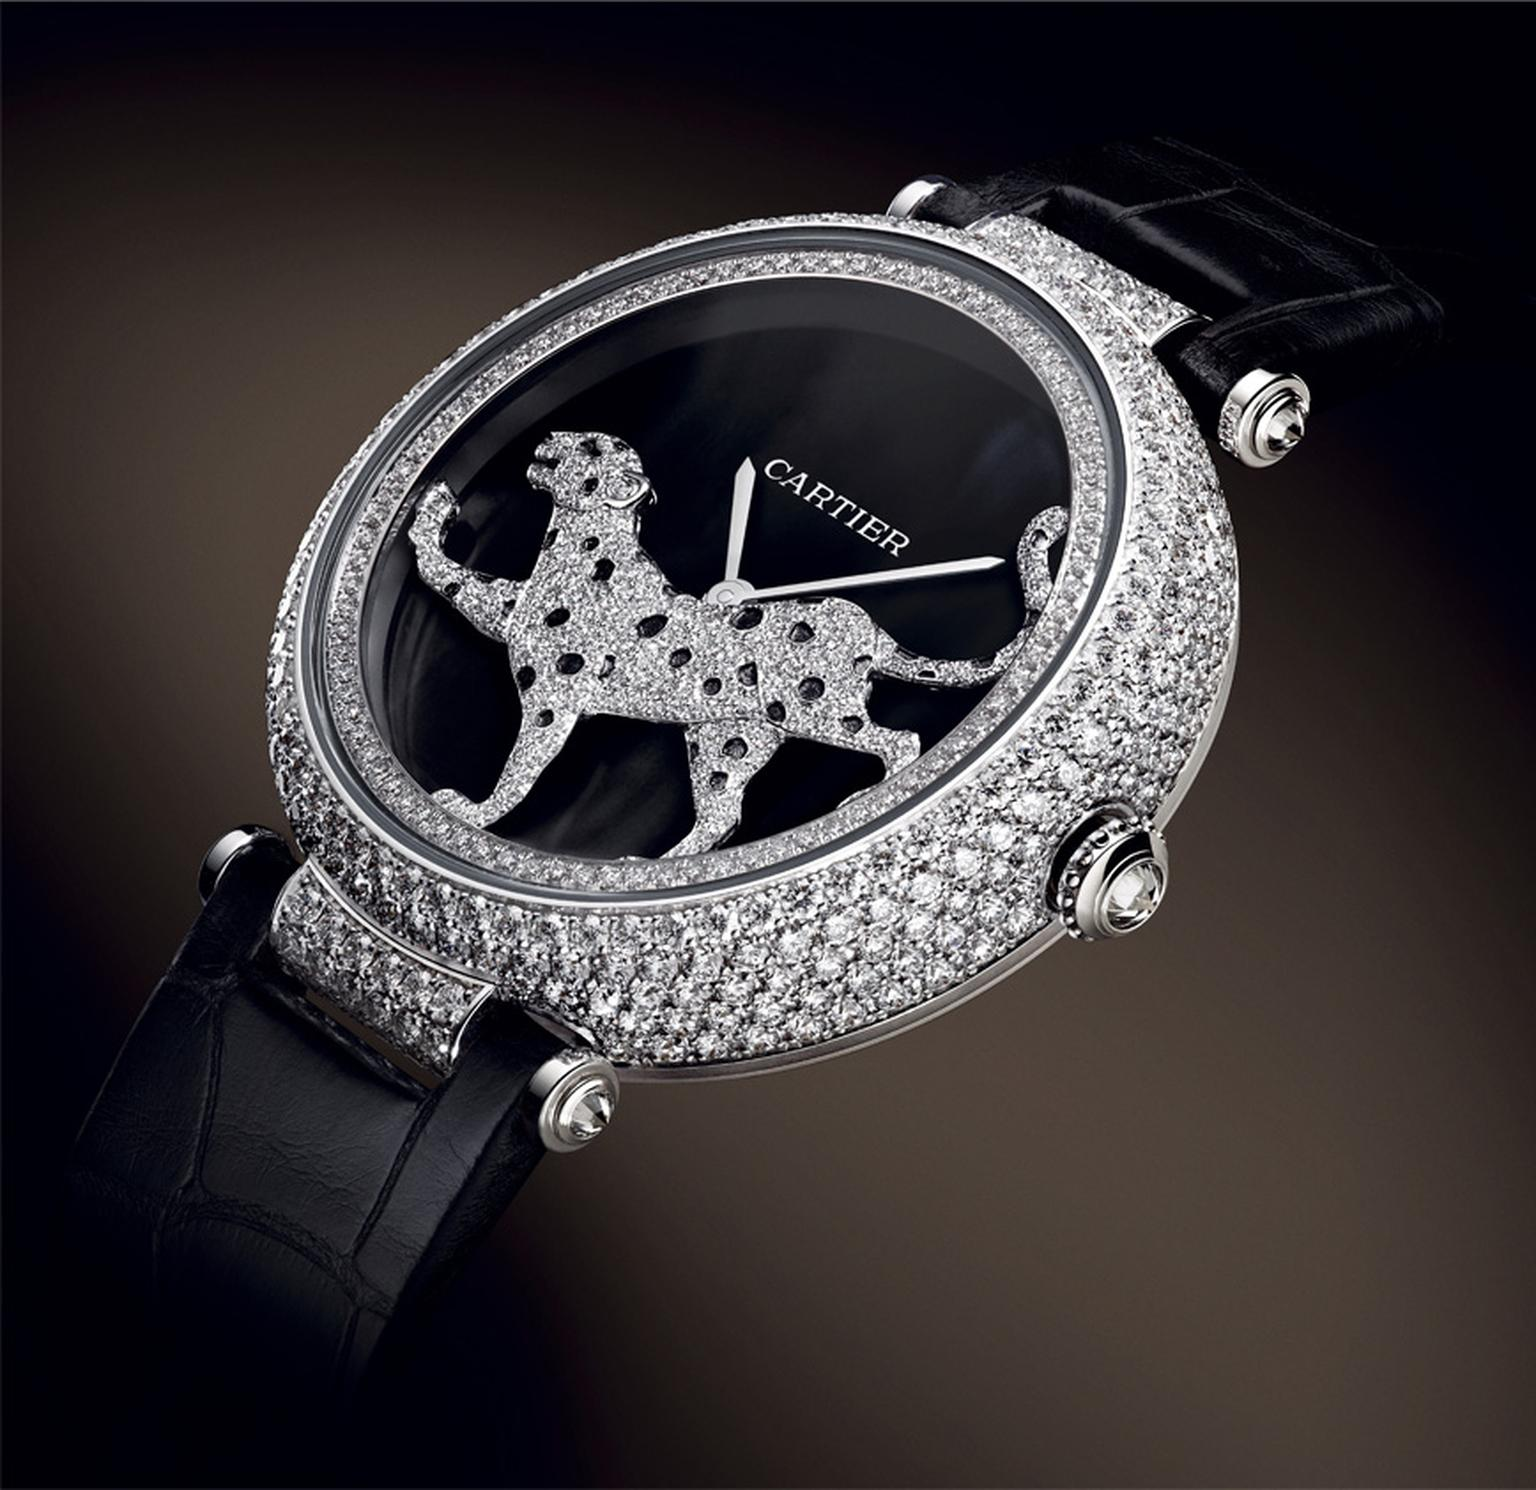 Cartier womens SIHH 2012